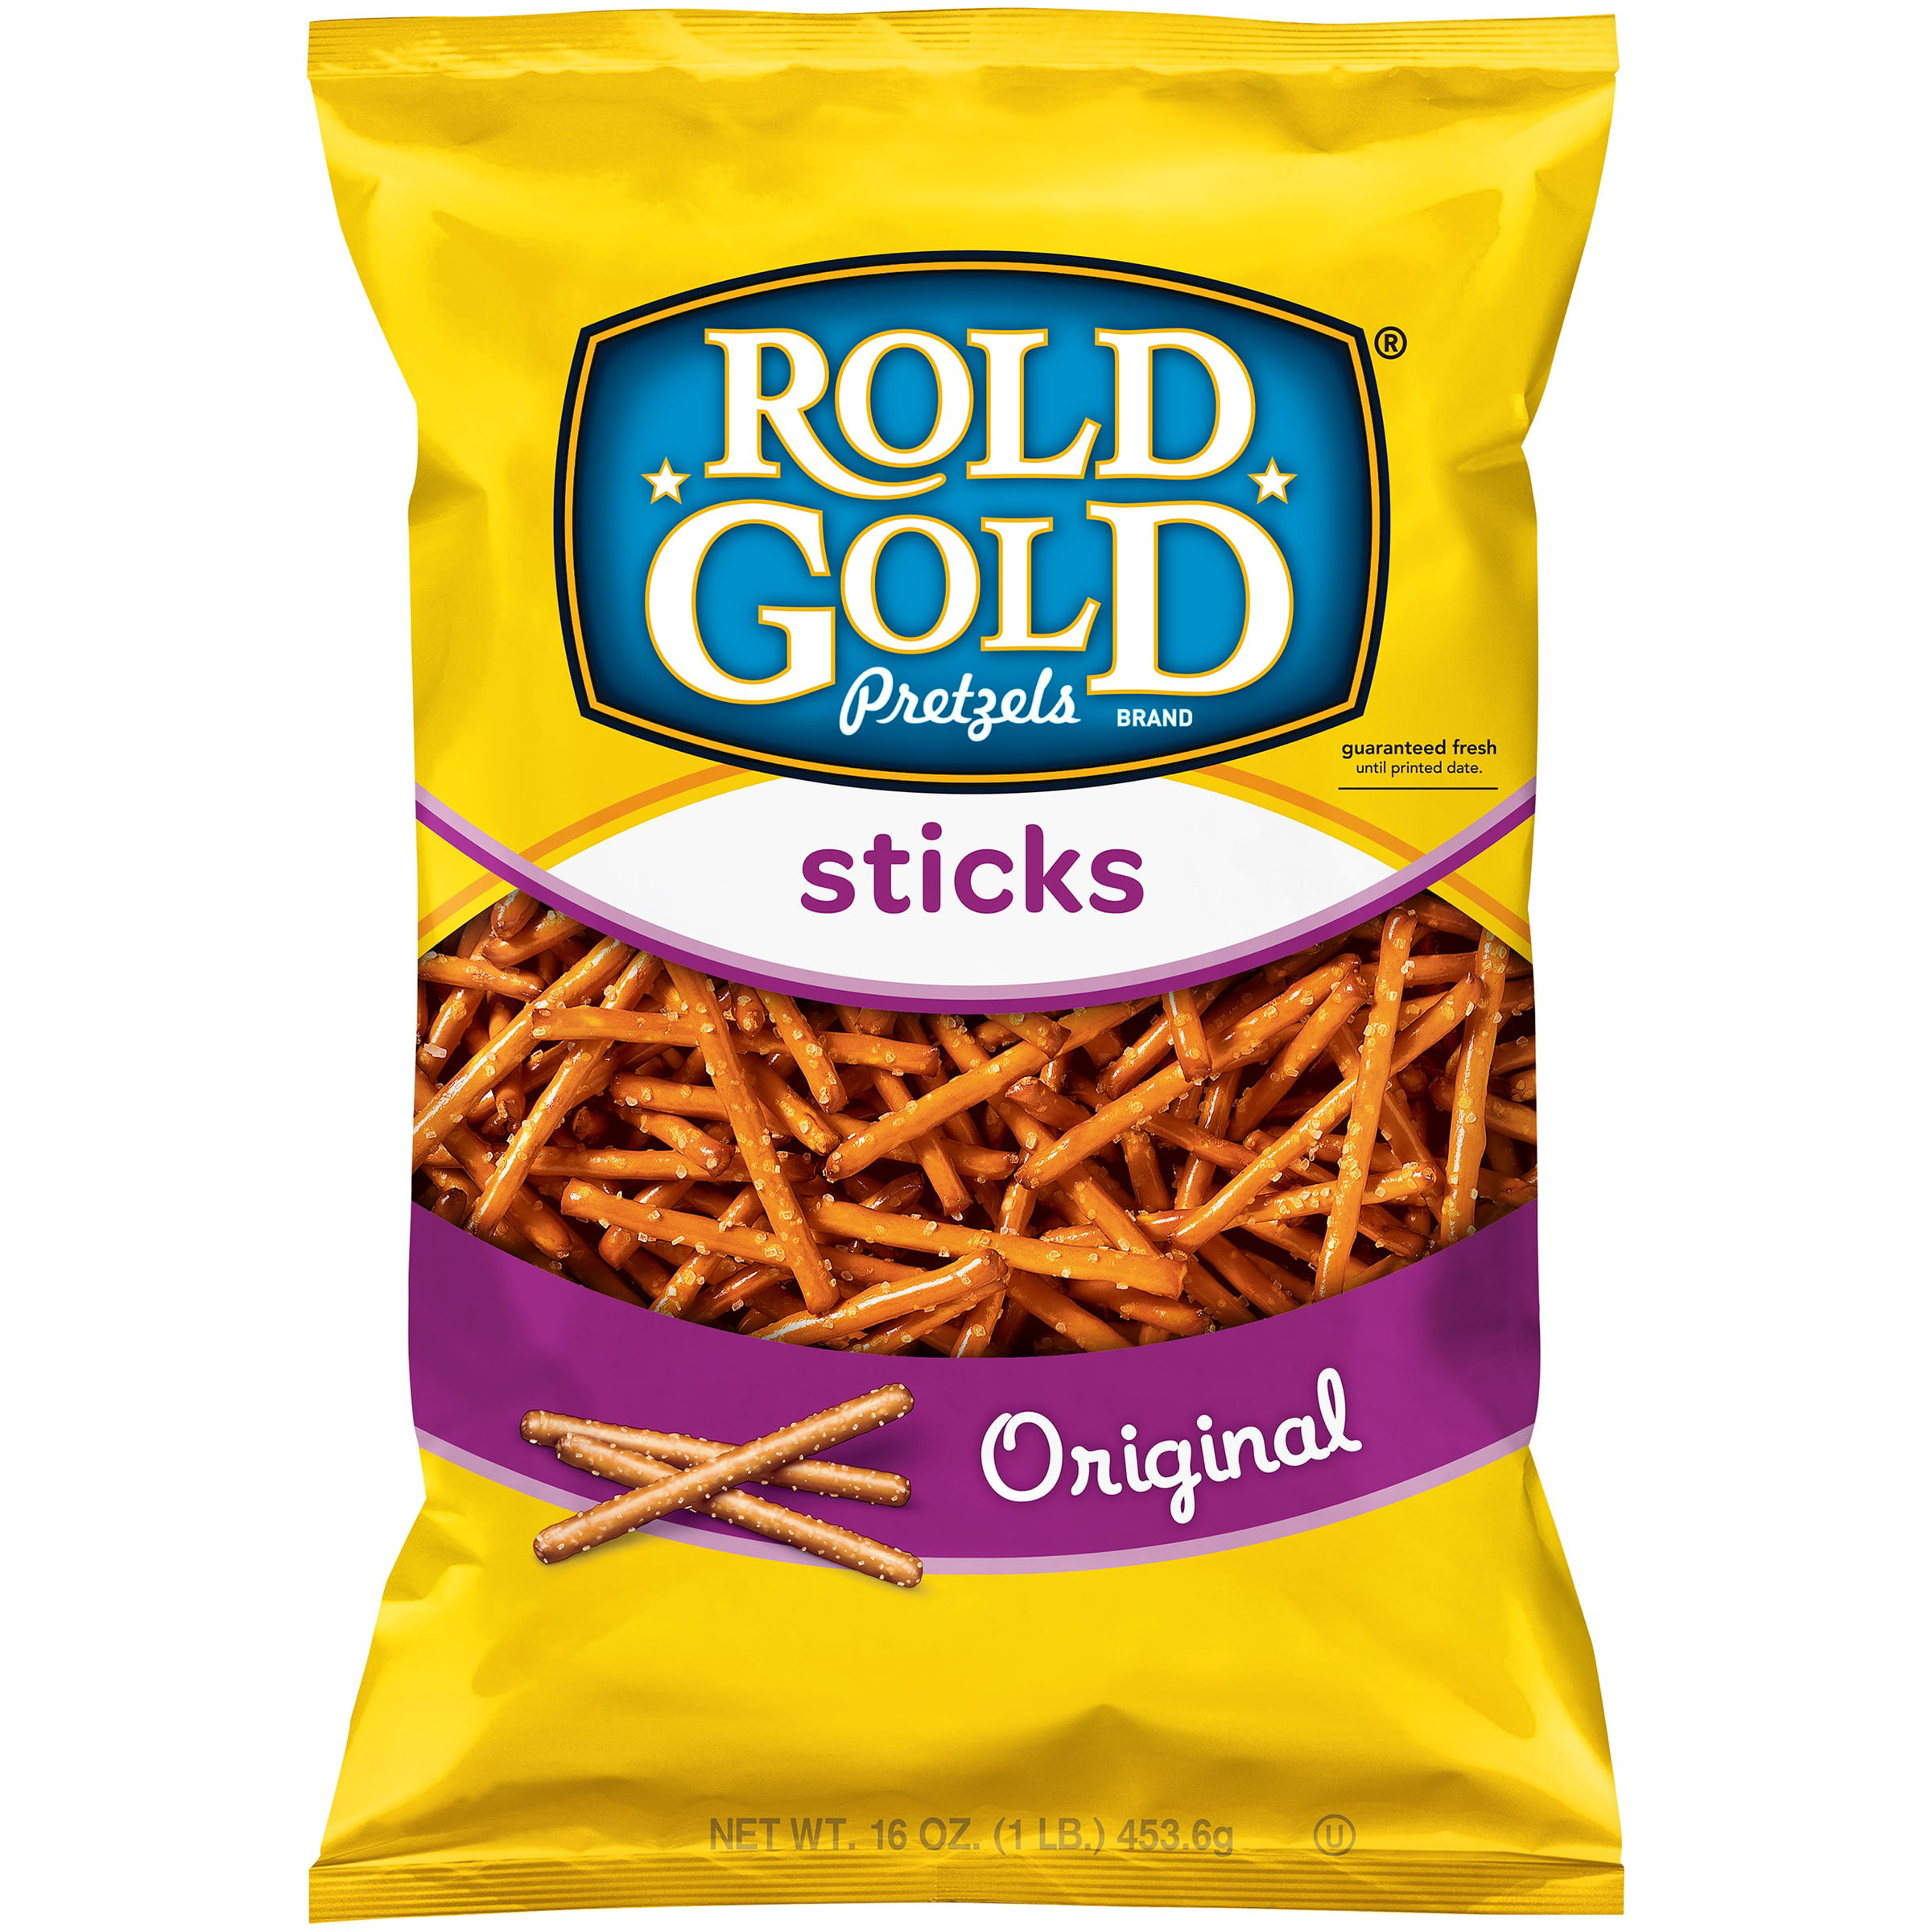 Rold Gold Sticks Original Pretzels, 16 oz Bag by Frito-Lay, Inc.